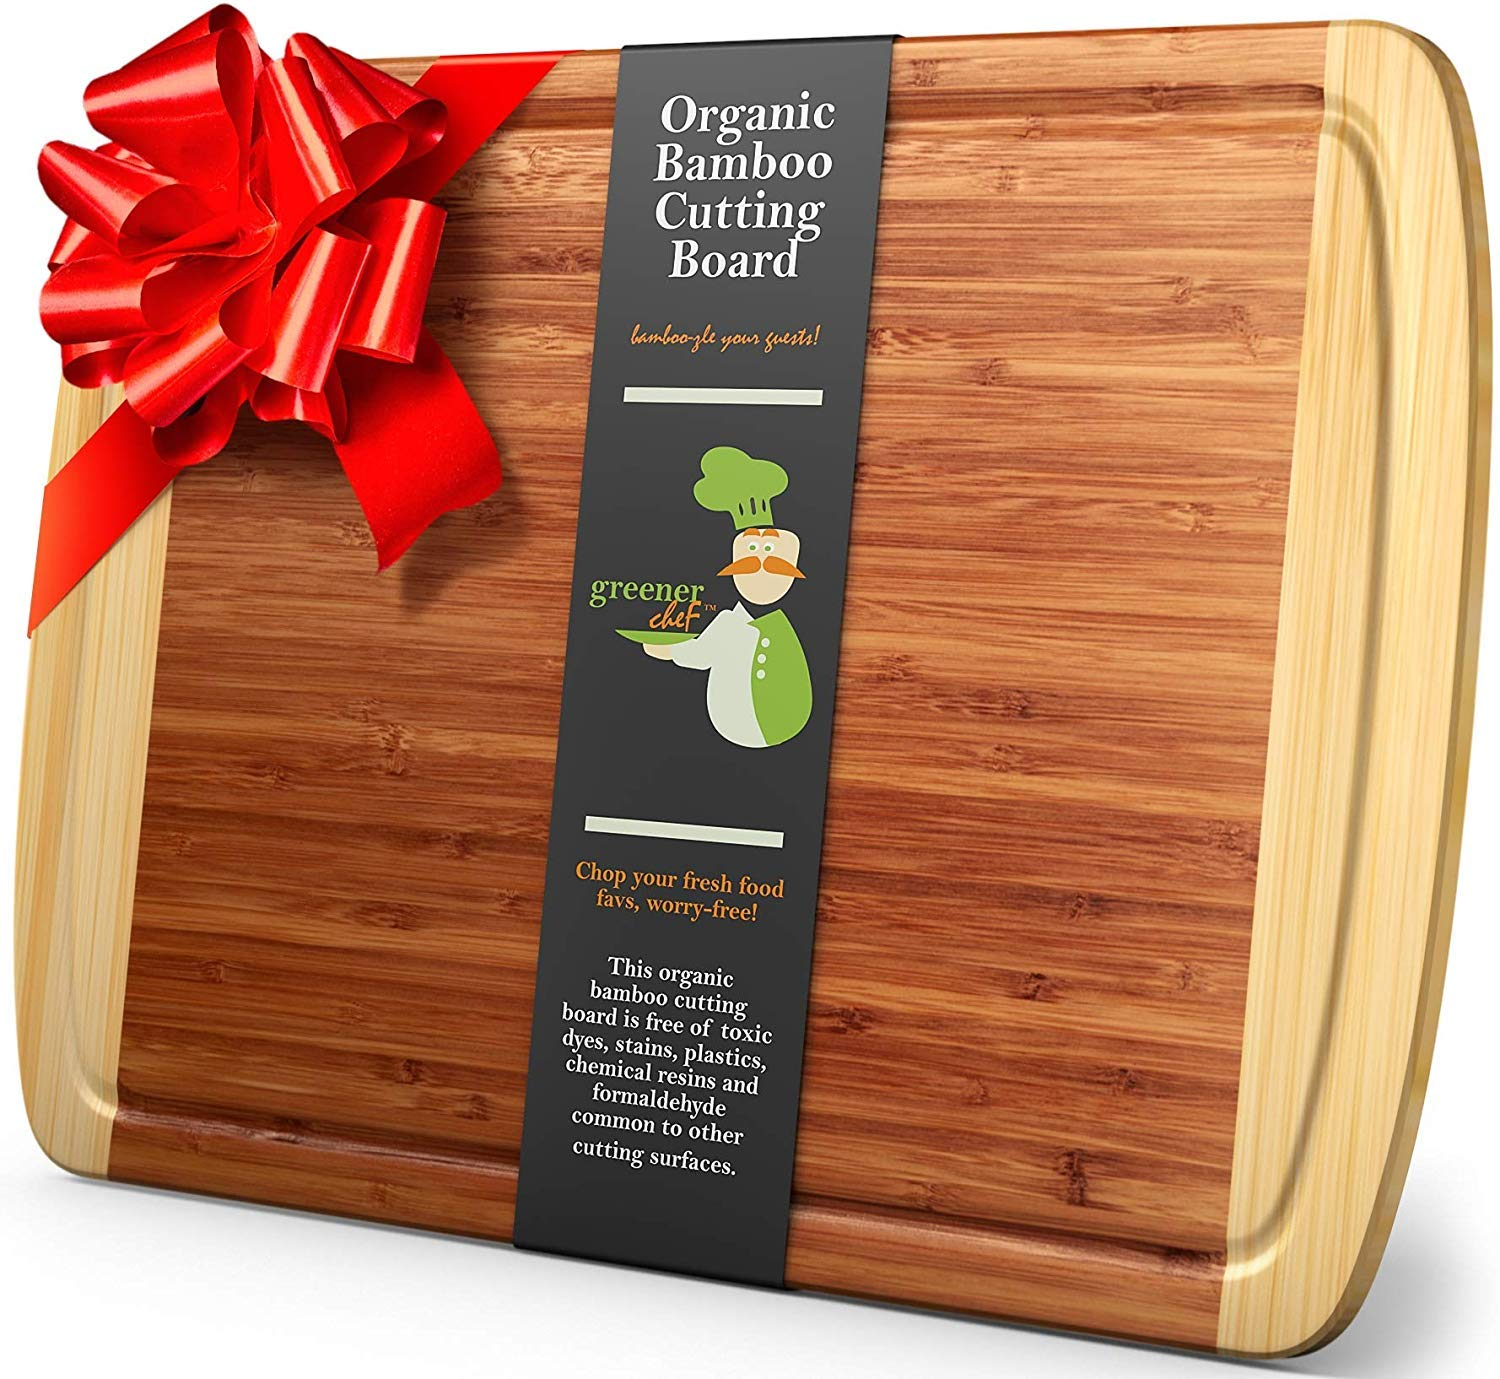 Greener Chef Extra Large Bamboo Cutting Board Lifetime Replacement Cutting Boards For Kitchen 18 X 12 5 Inch Organic Wood Butcher Block And